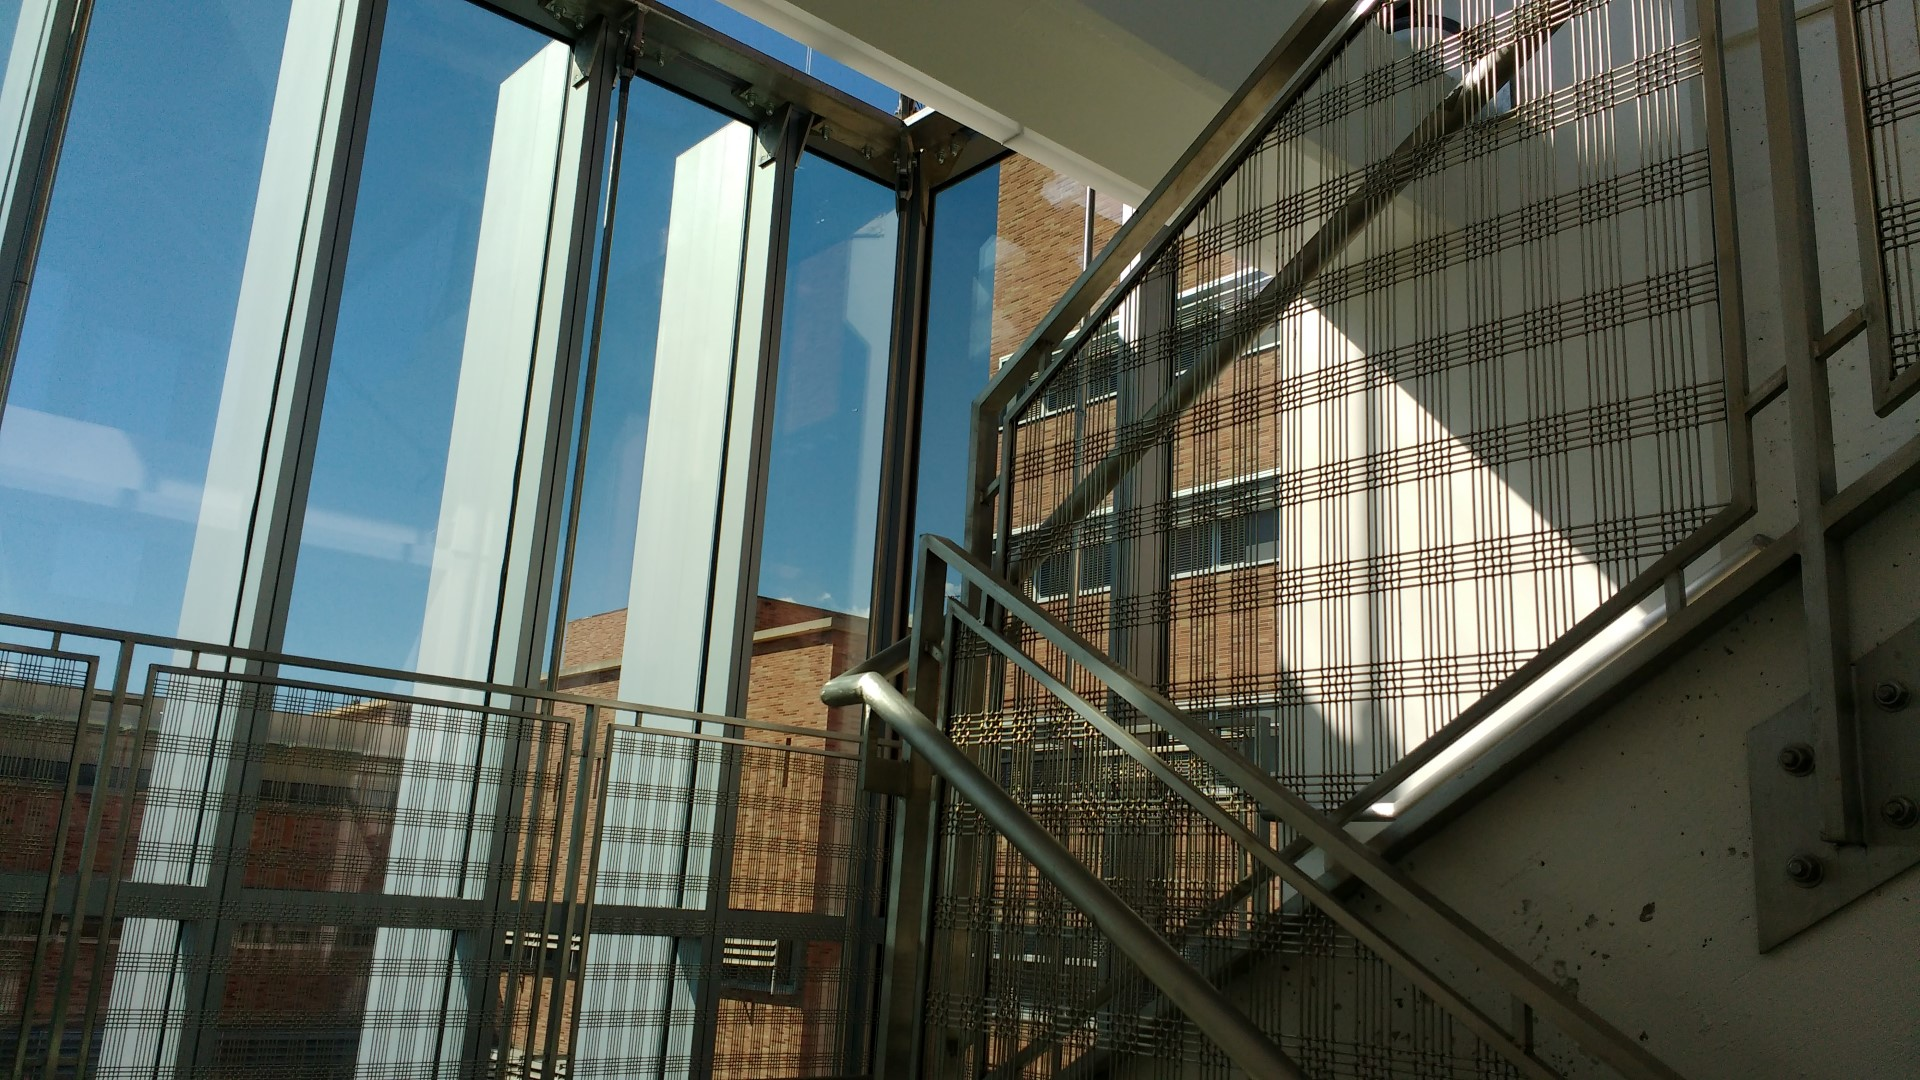 The transparency of the railing infill creates a layered aesthetic between levels on the stiarway.